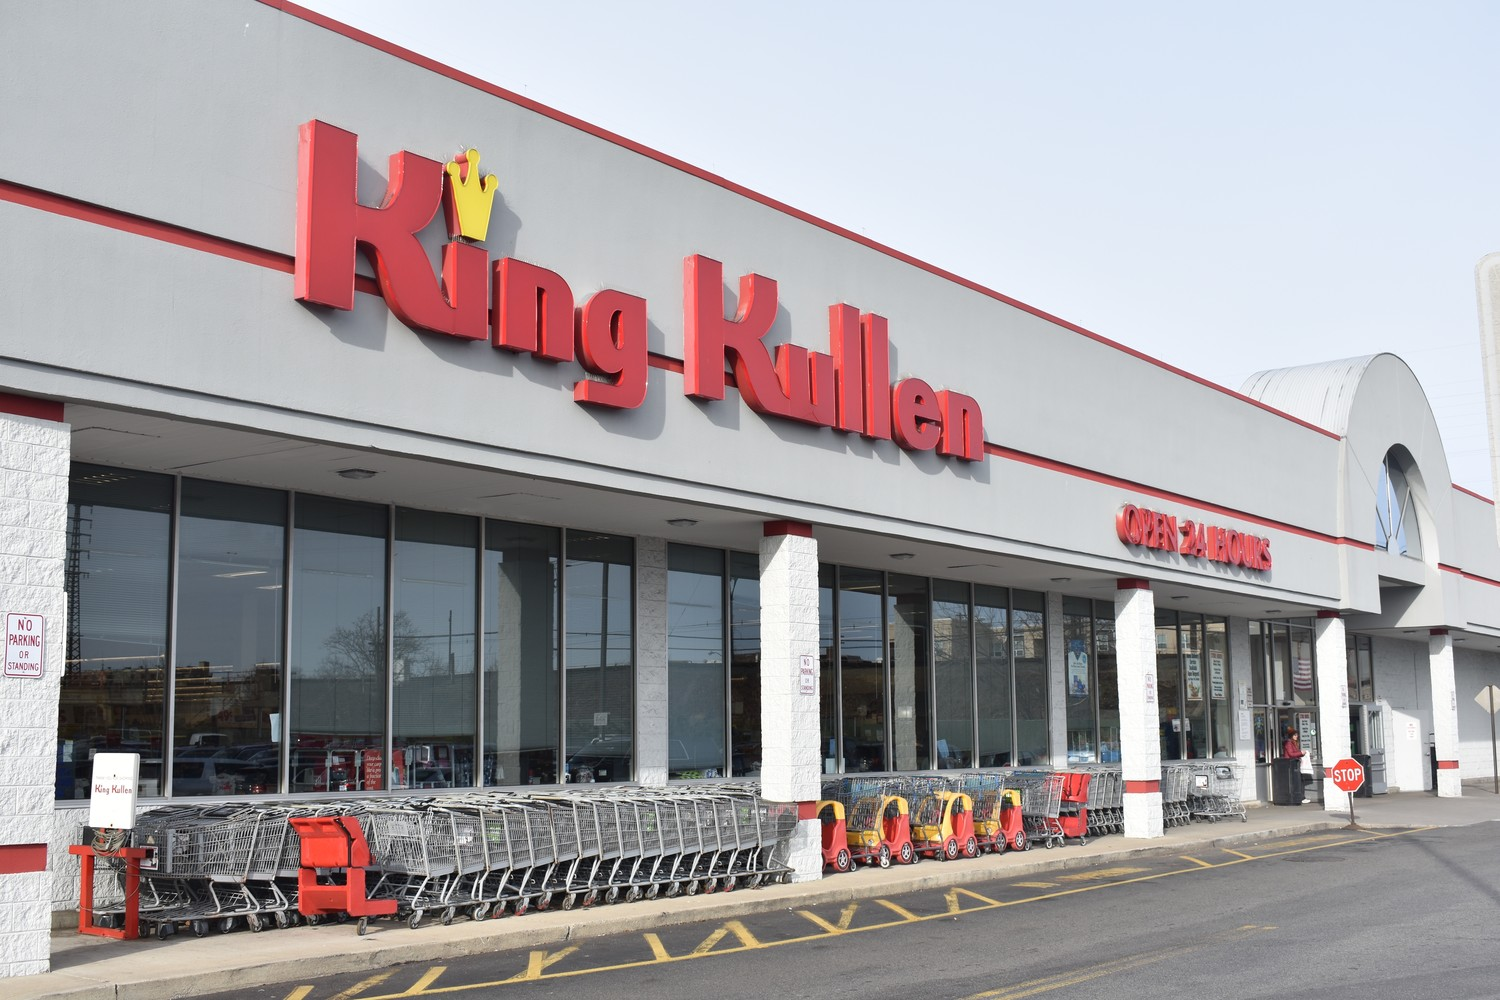 Stop & Shop announced on Jan. 4 that it would purchase King Kullen's supermarket assets, including this store at 127 Sunrise Highway in Rockville Centre.